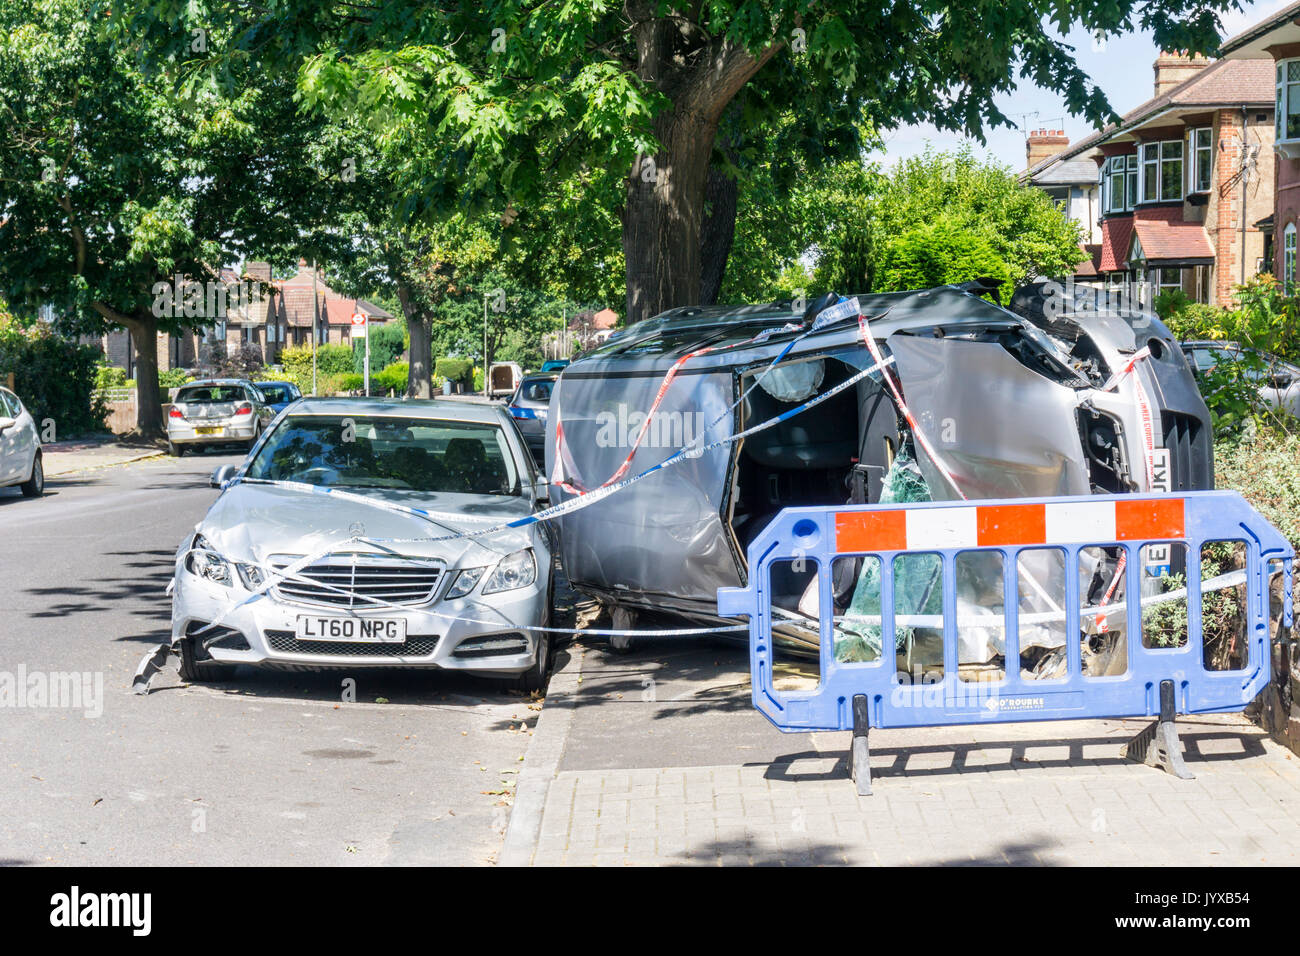 Result of traffic accident in suburban residential road.  Silver Nissan Qashqai Visia car overturned onto side on pavement & covered with police tape. - Stock Image